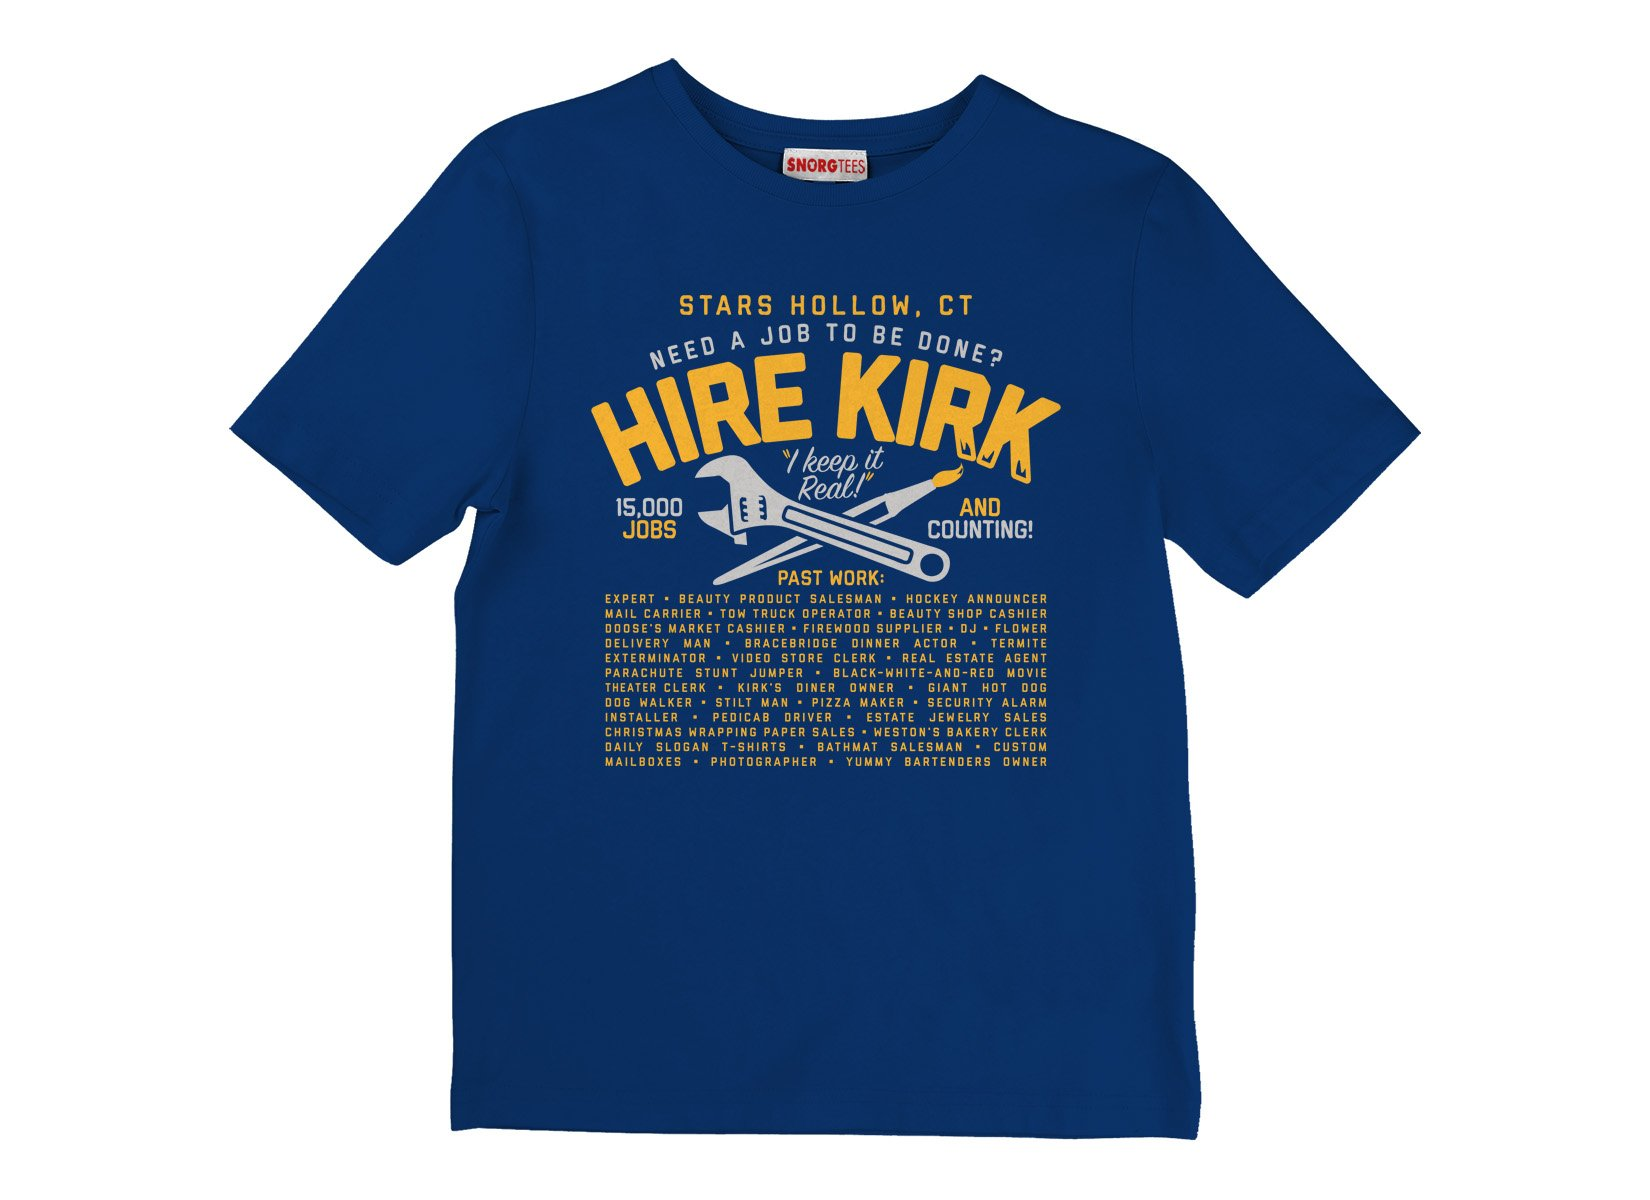 Hire Kirk on Kids T-Shirt